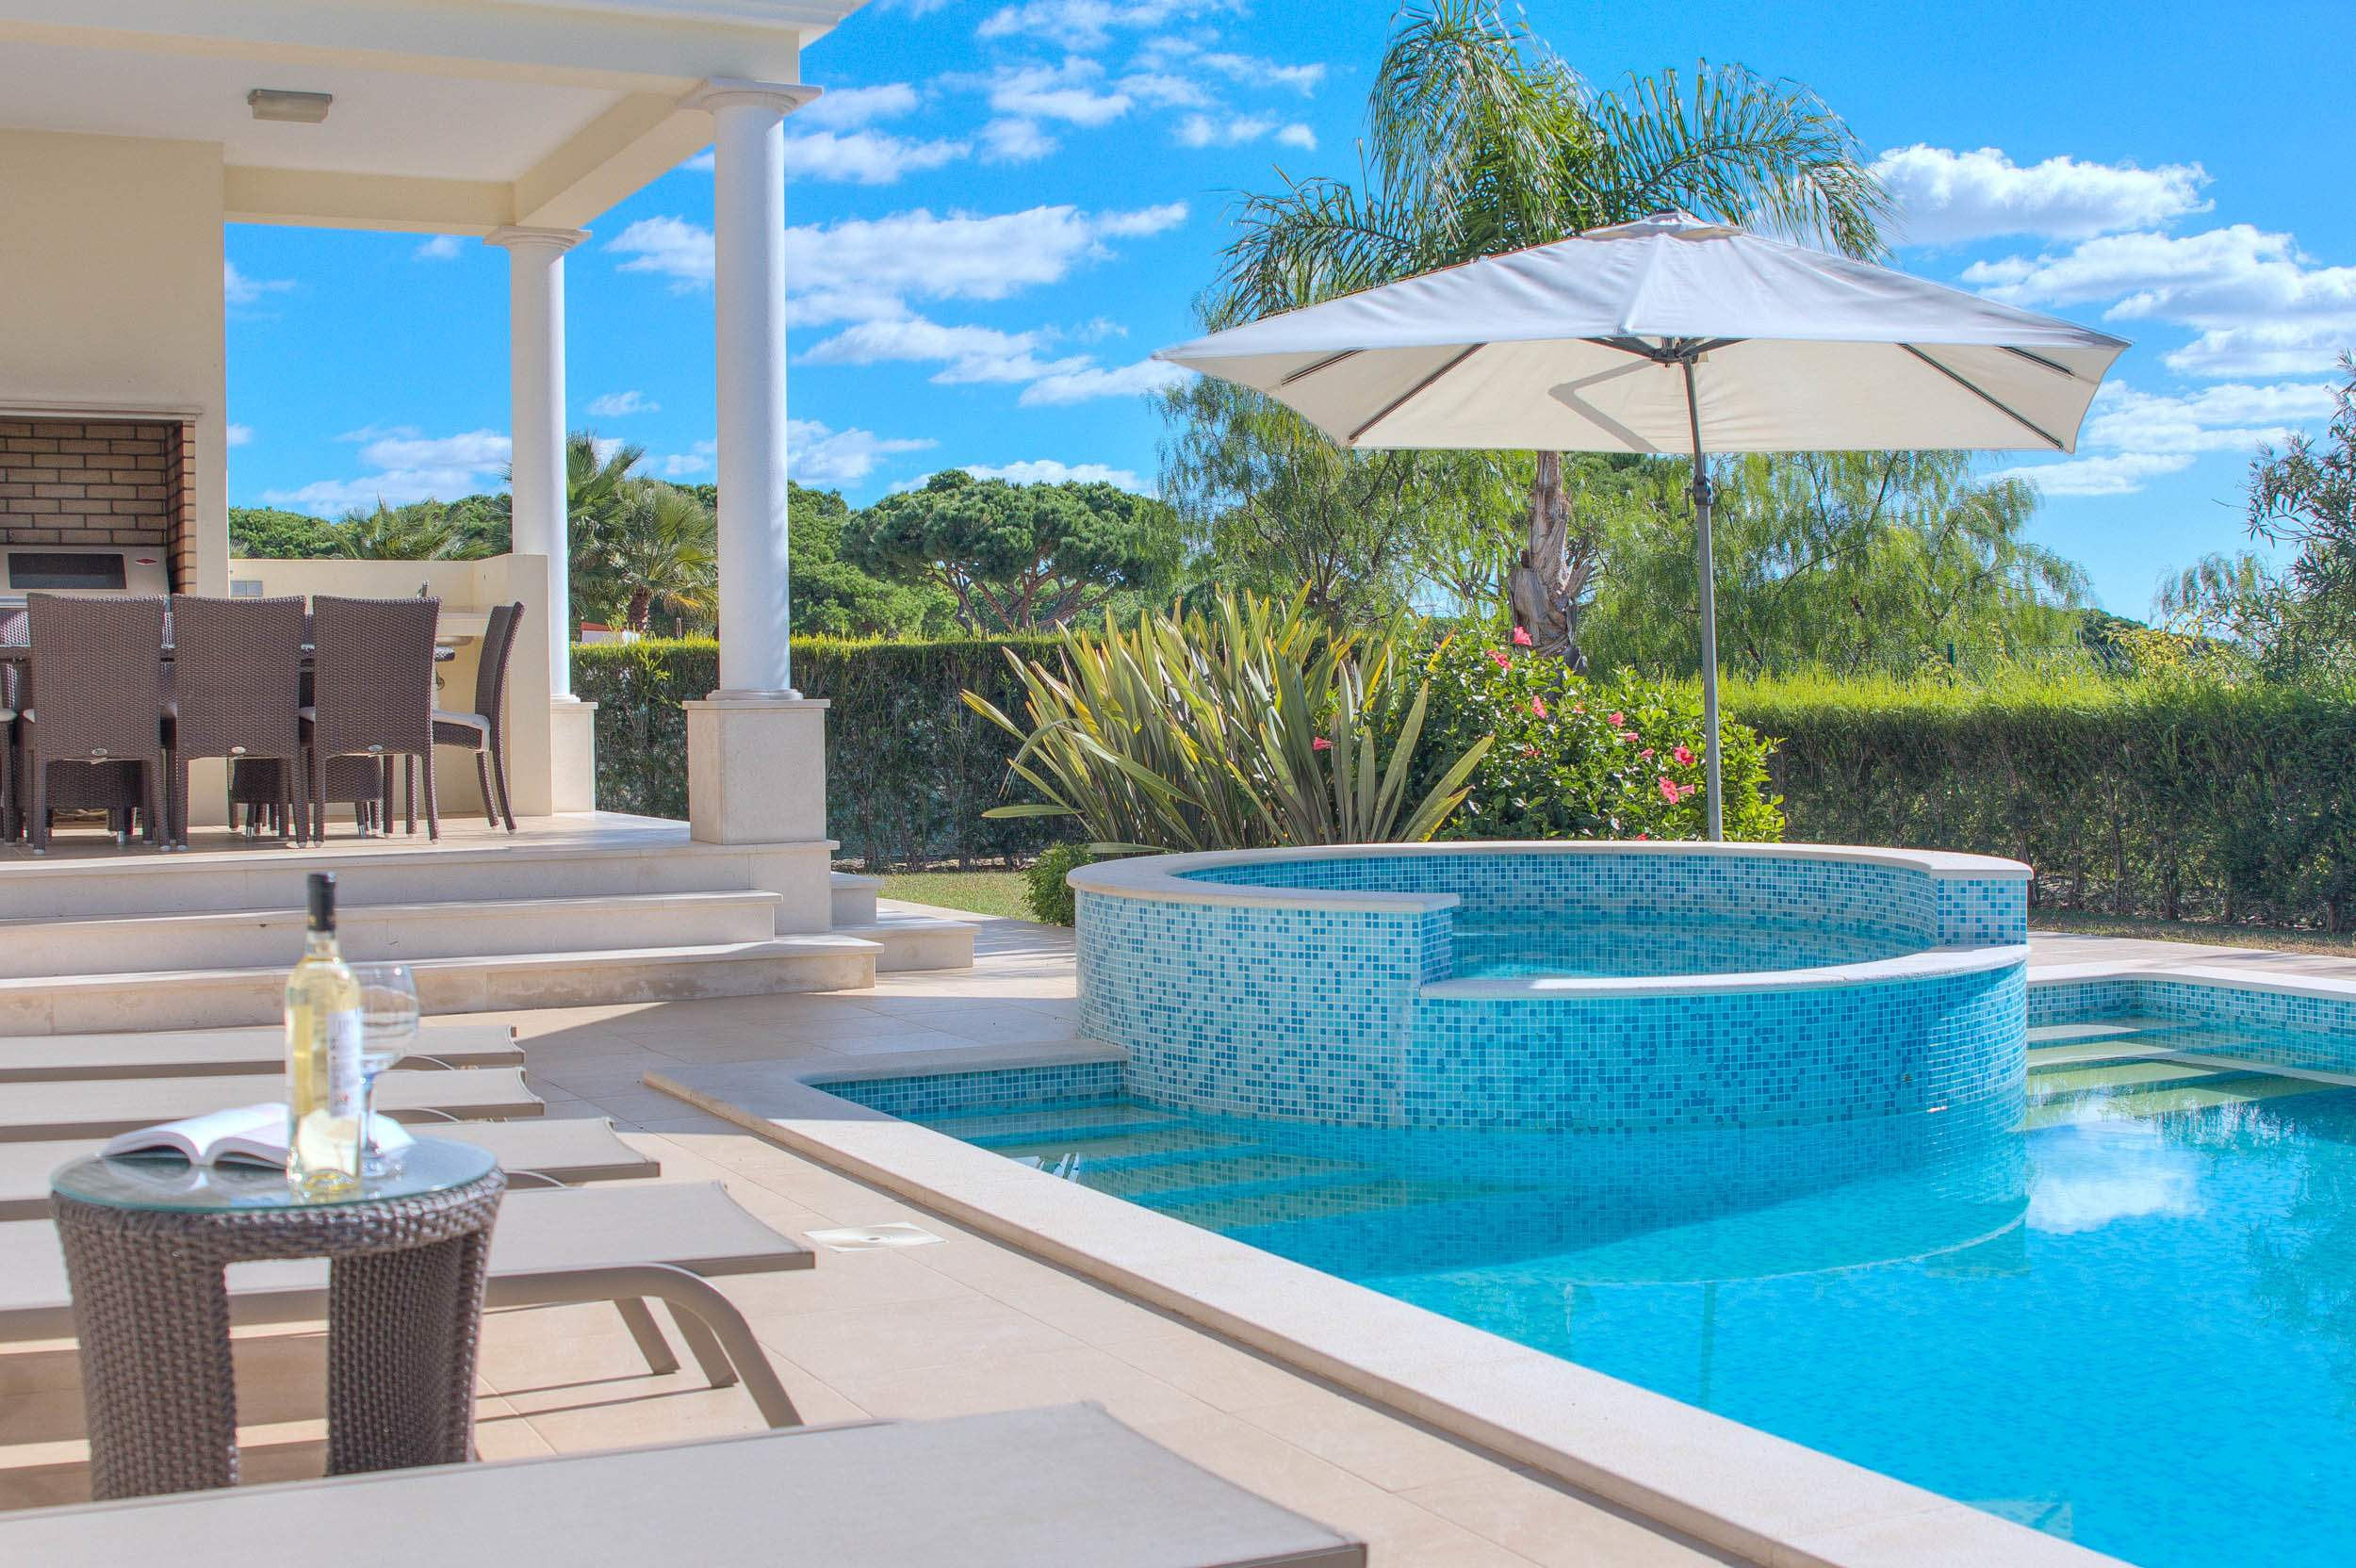 Villa Vida Doce, 6 bedroom villa in Vilamoura Area, Algarve Photo #8